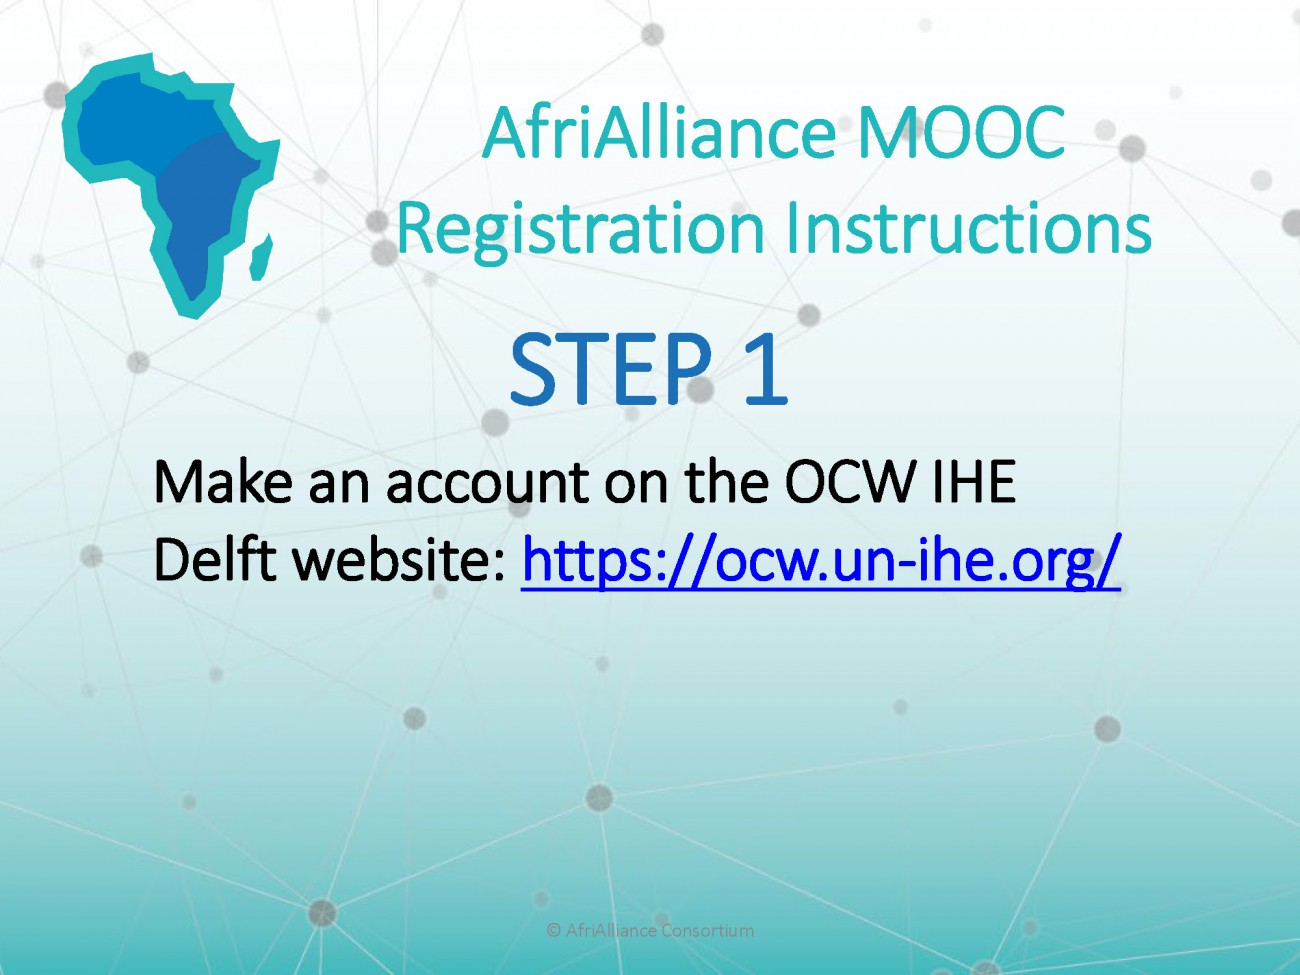 Step 1 of the instructions to enrolling in AfriAlliance MOOCs